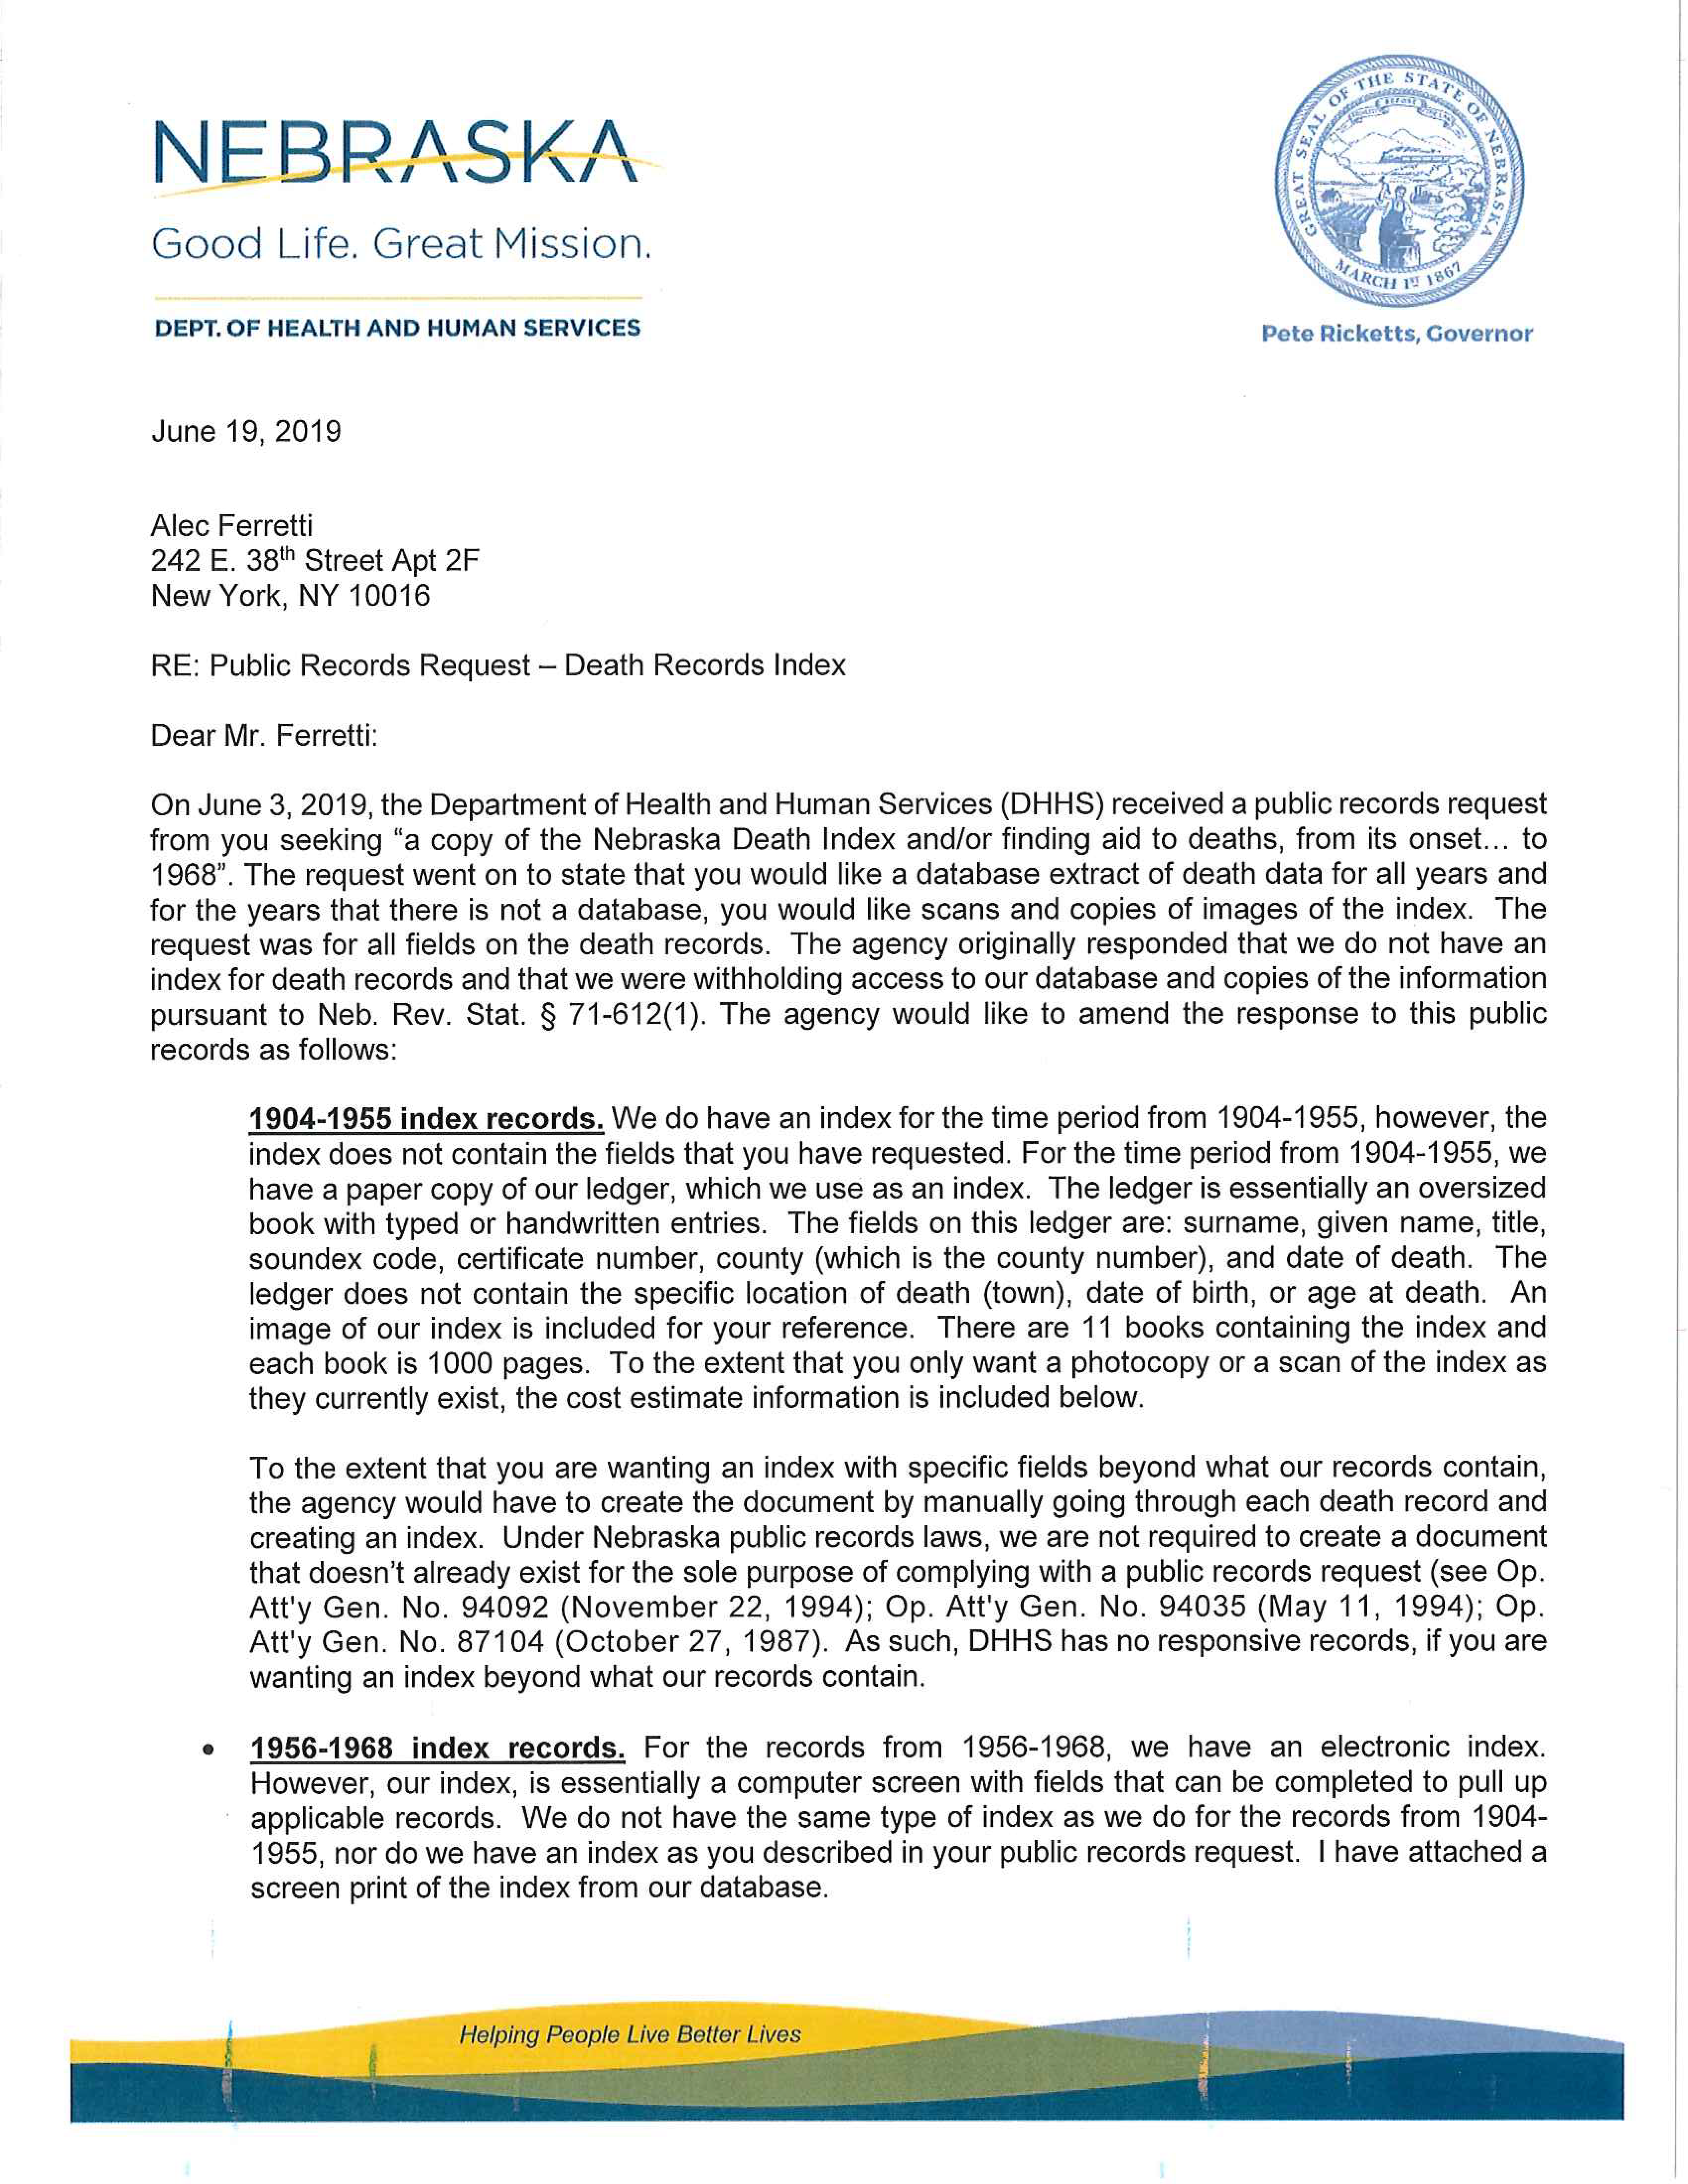 Nebraska DHSS Acceptance of Request (June 19, 2019)